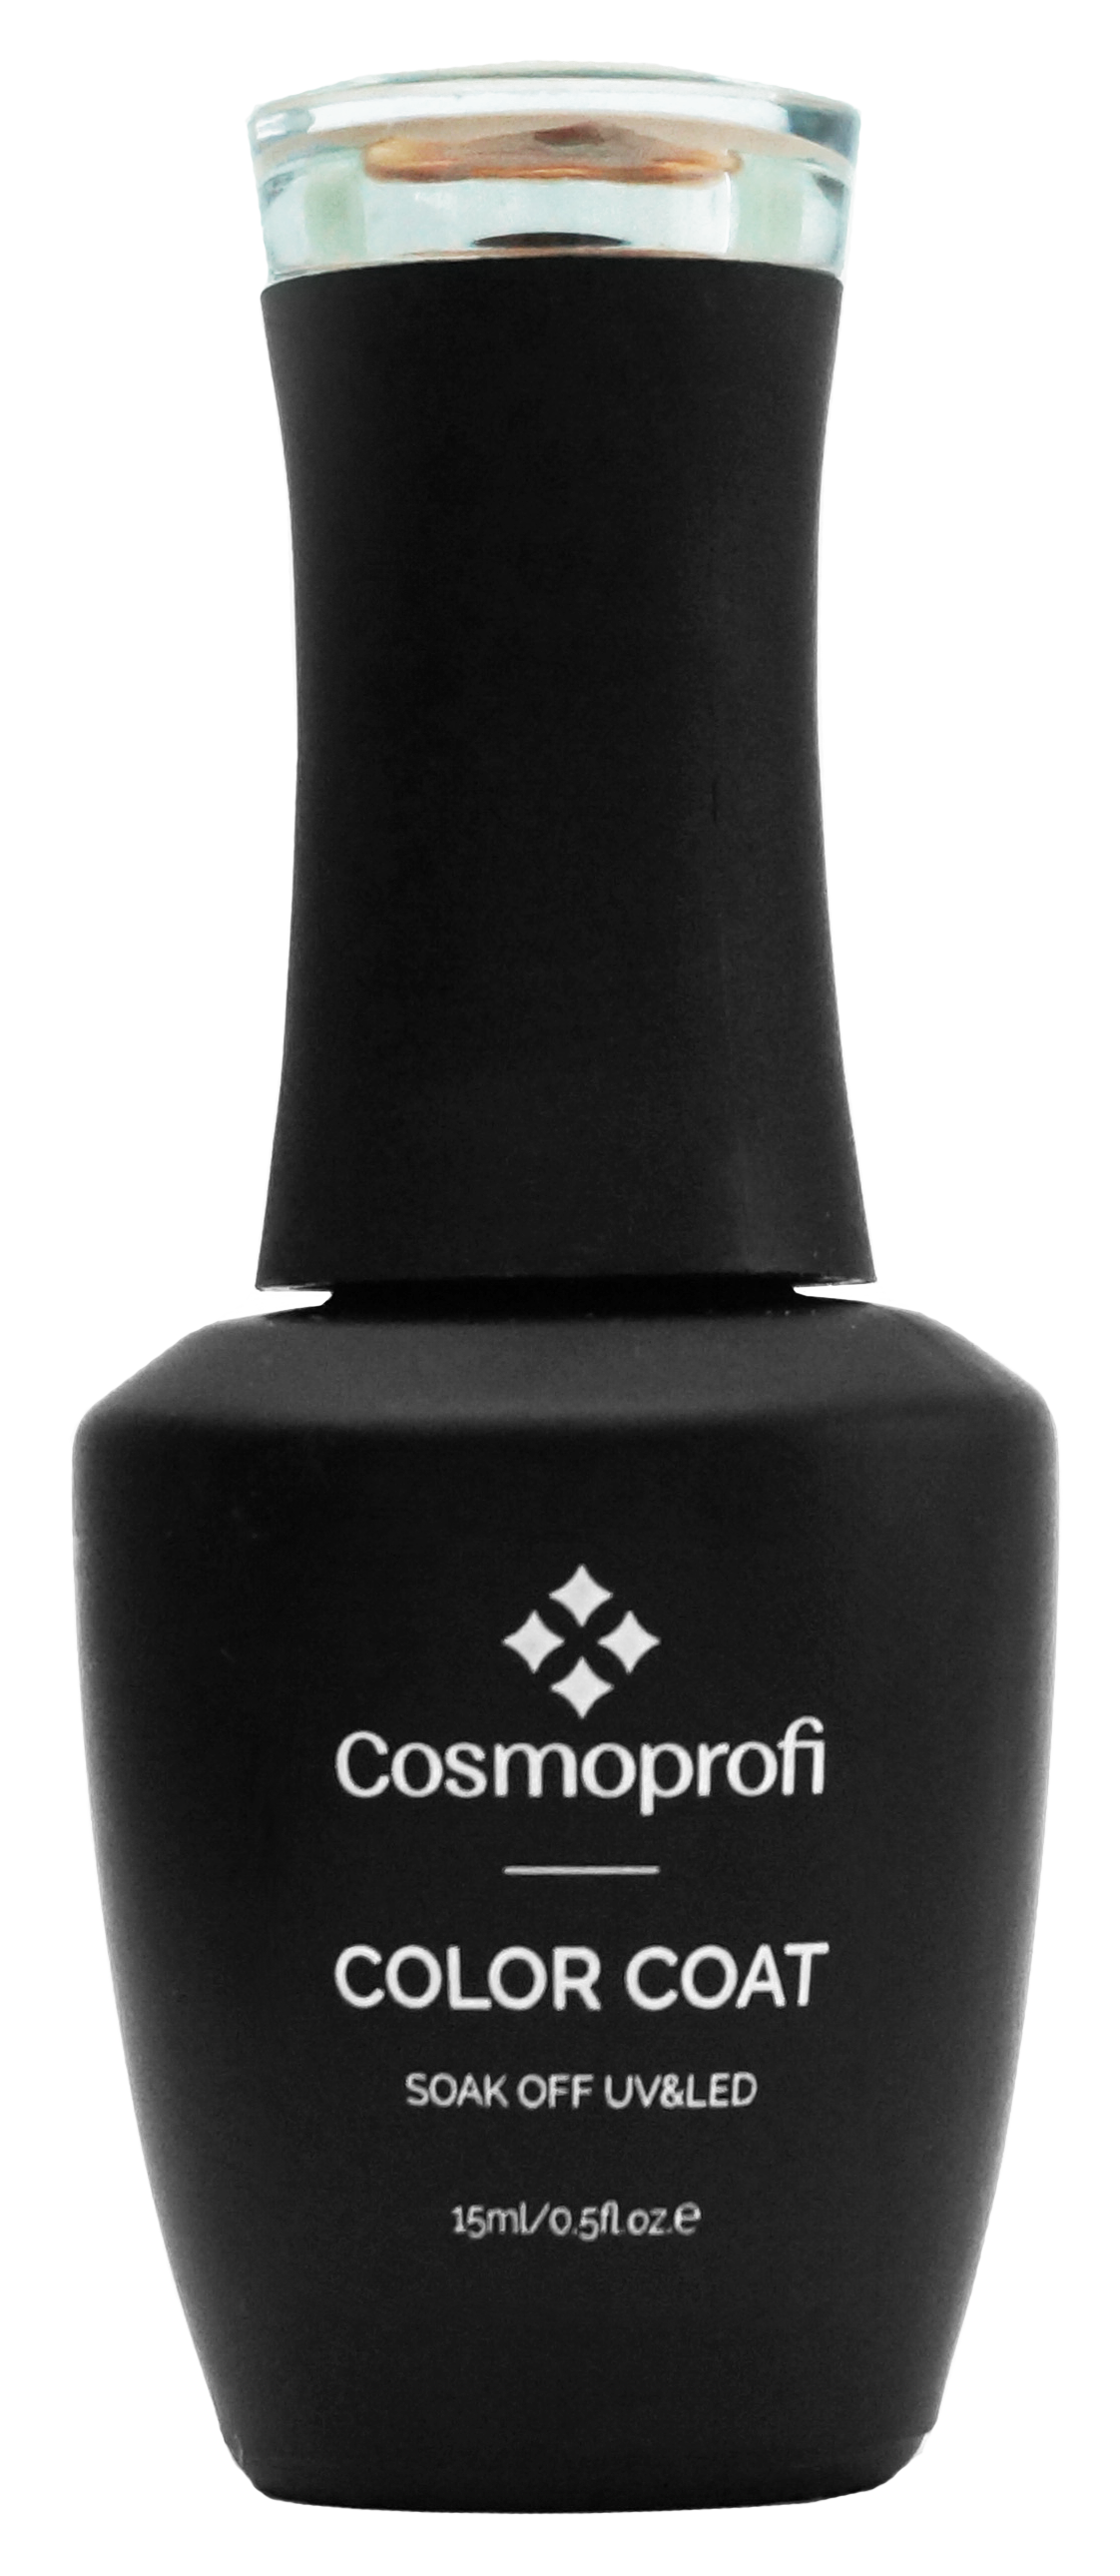 Гель-лак Cosmoprofi, Color coat № 395, 15 мл